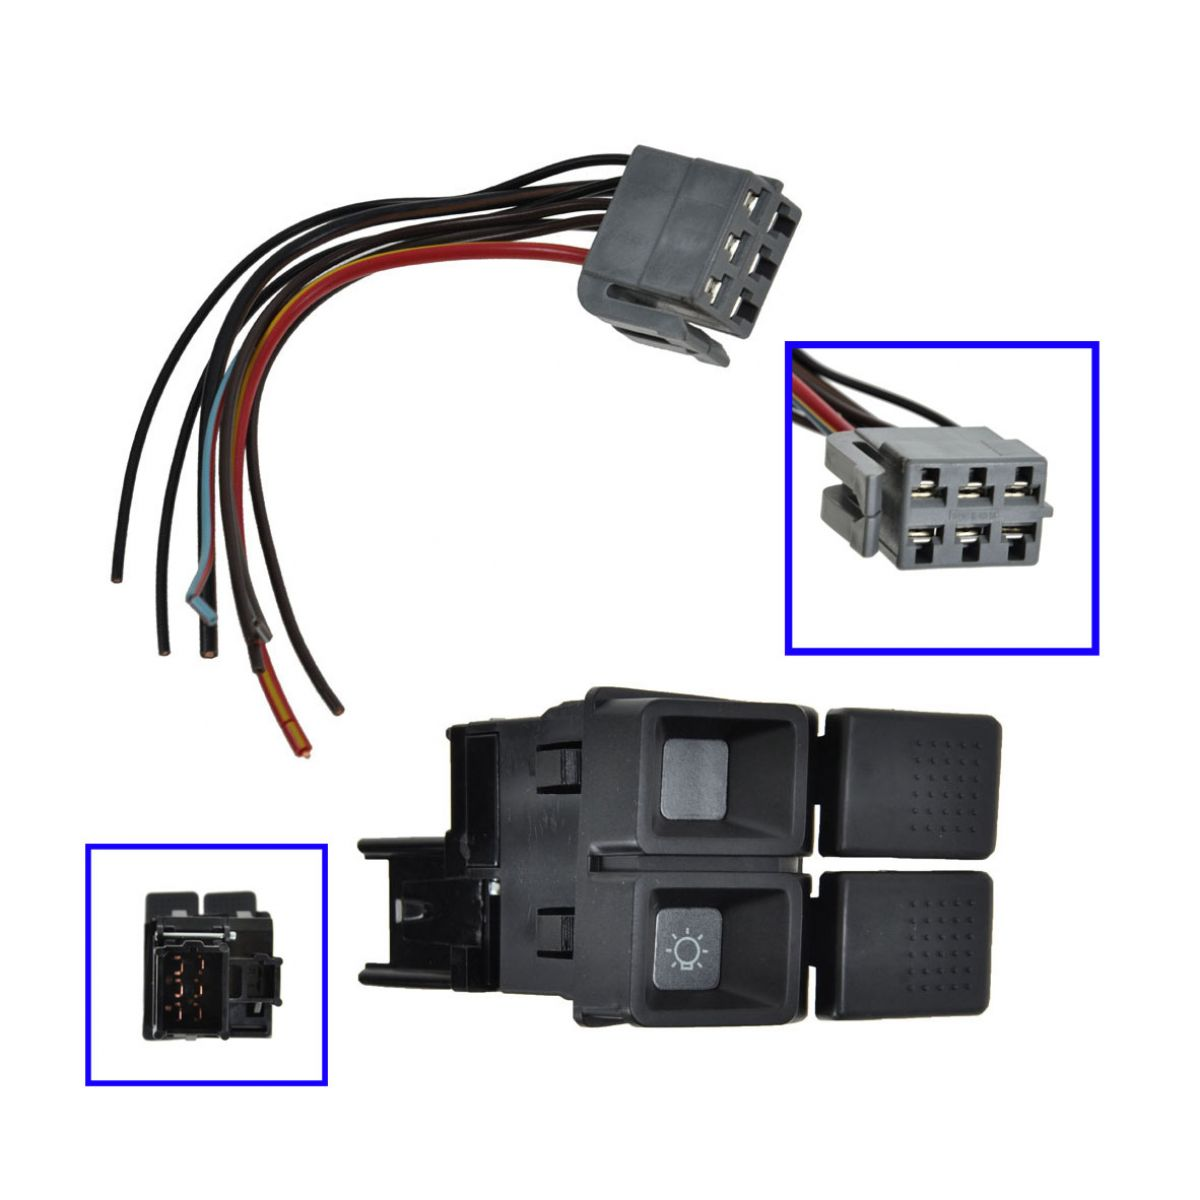 Details about Headlight Switch w/Plug & Wiring for Ford Mustang 87-93